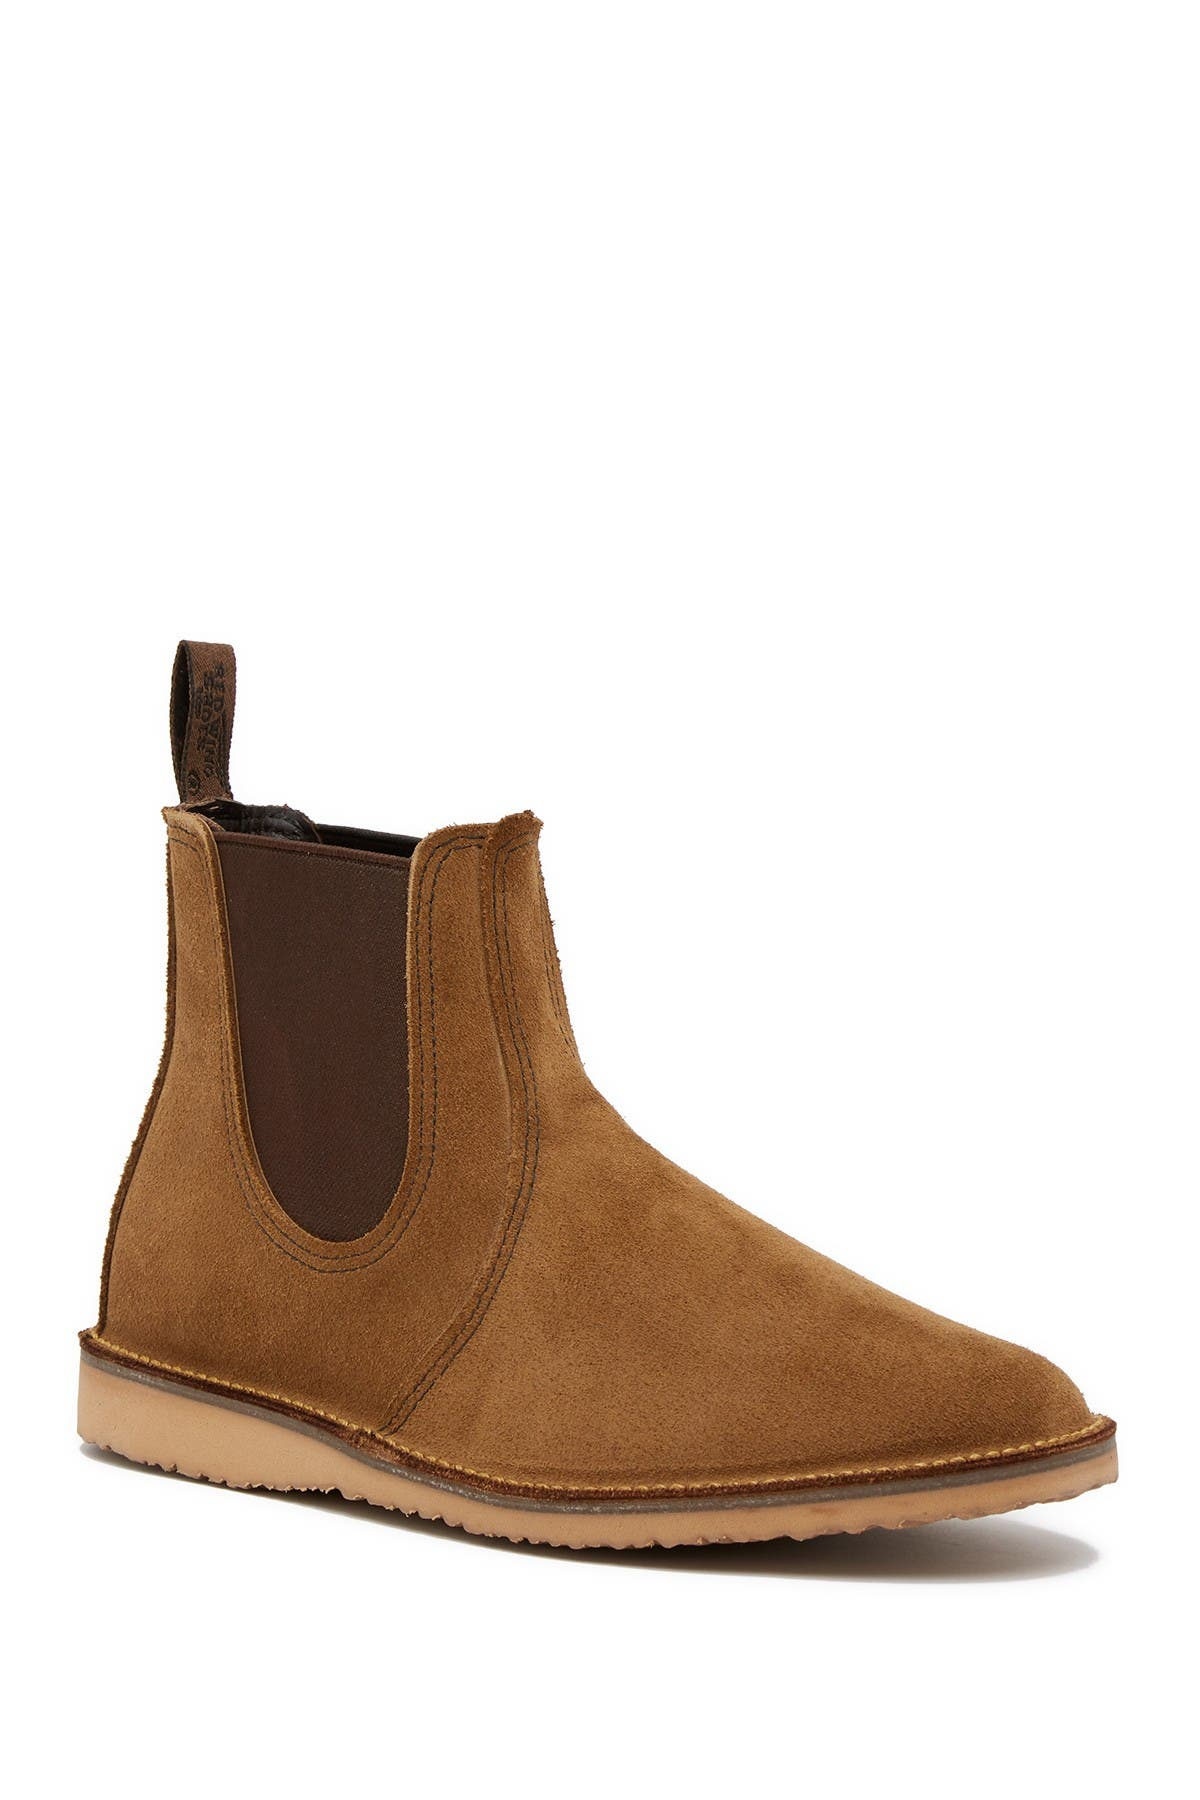 Image of RED WING Weekend Suede Chelsea Boot - Factory Second - Extra Wide Width Available